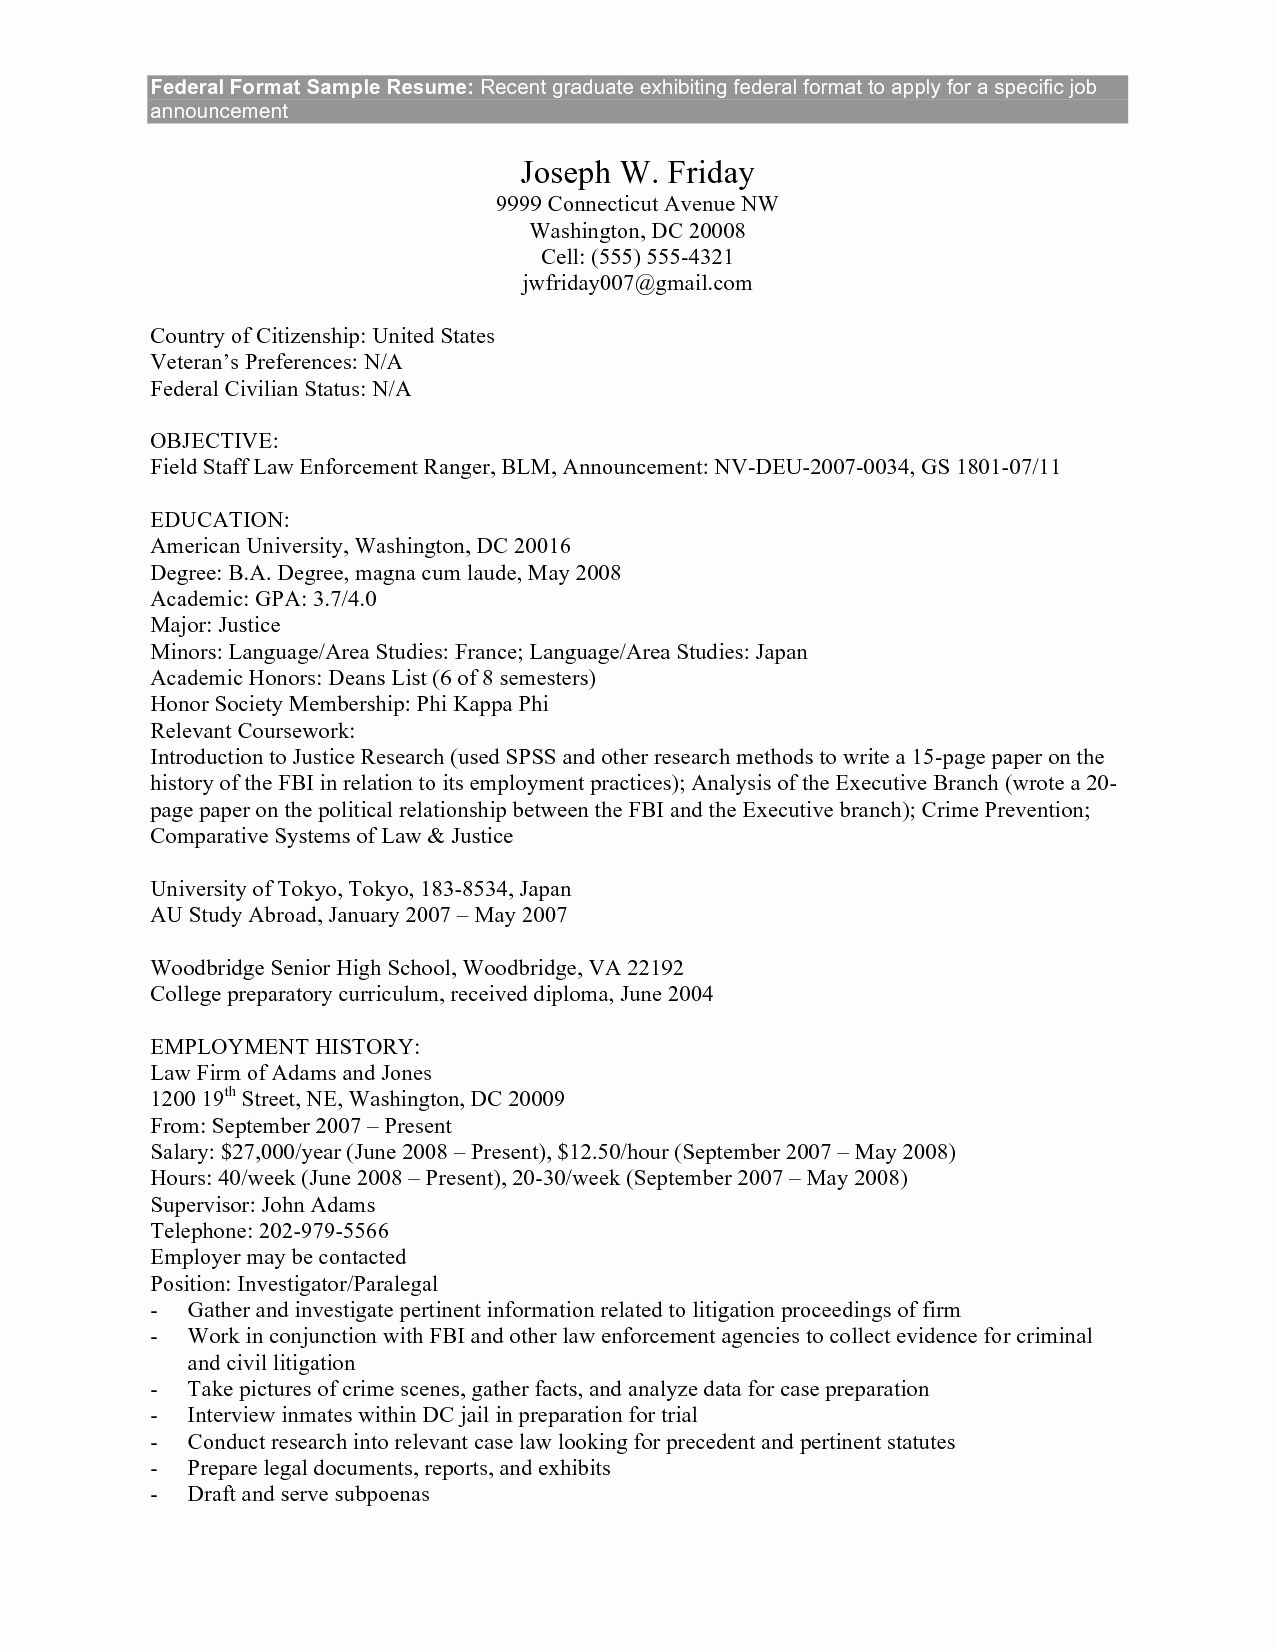 resume for federal job